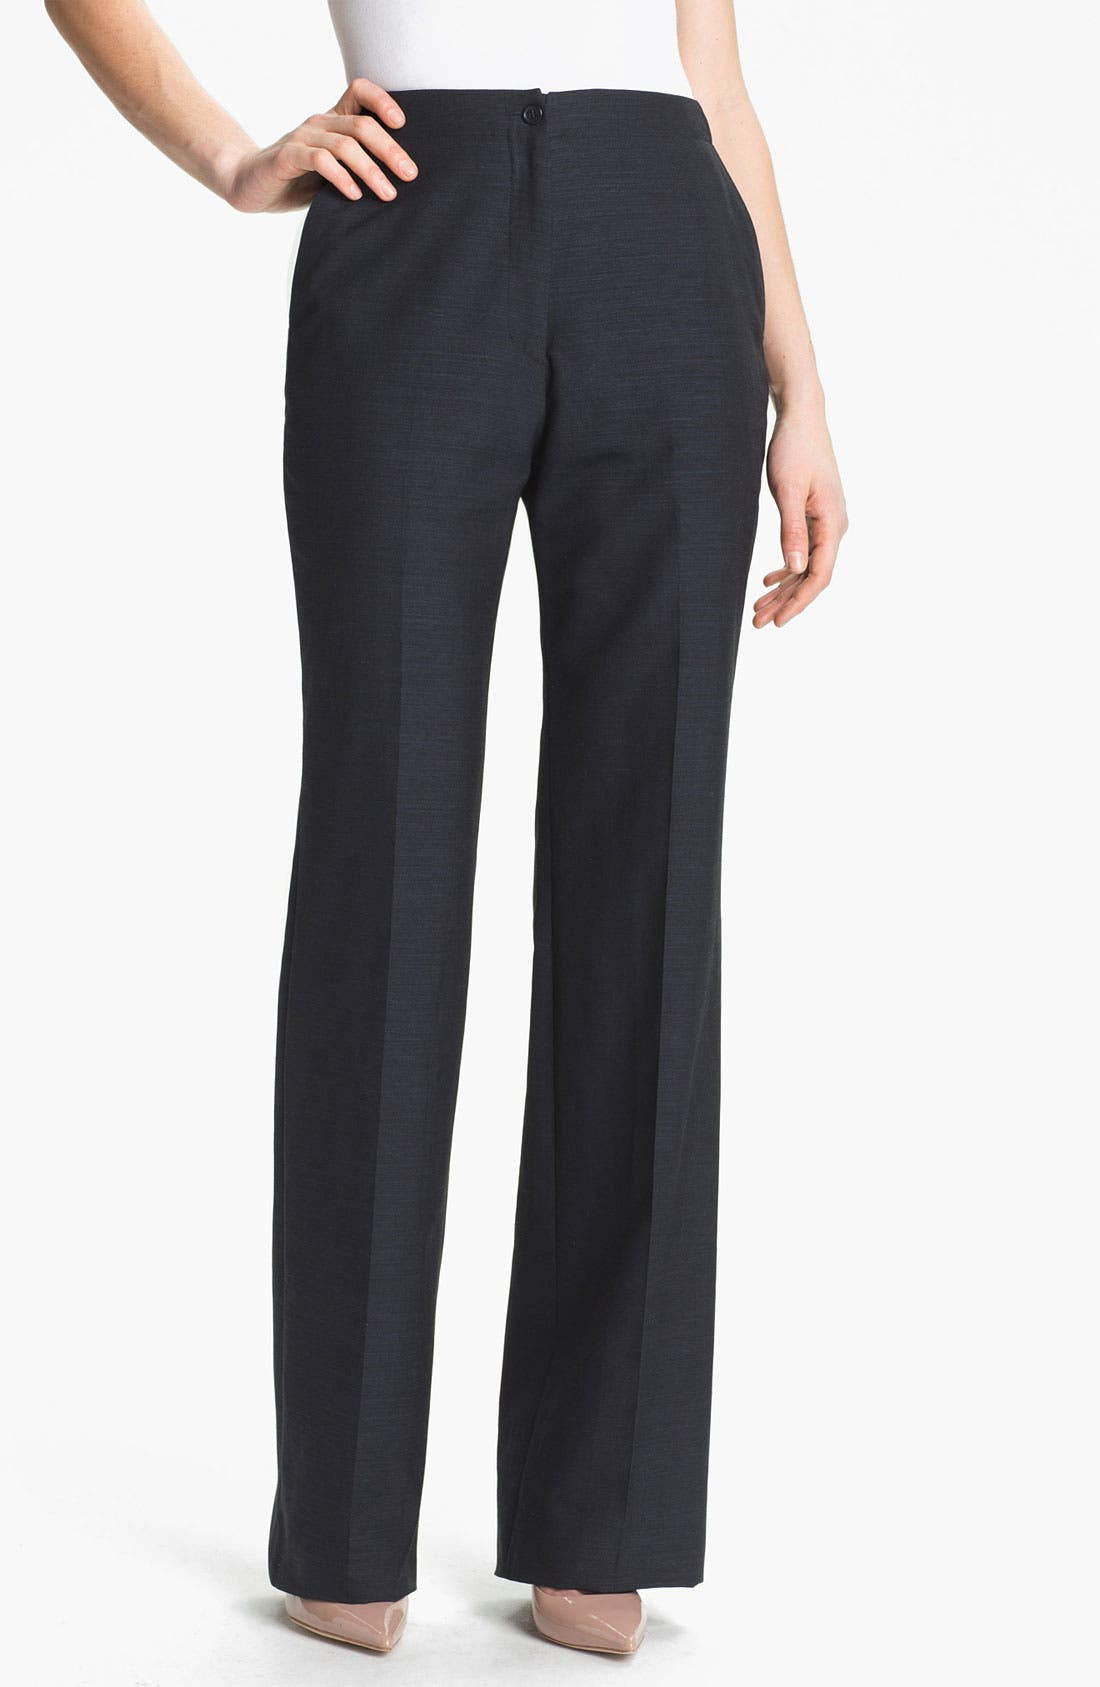 Alternate Image 1 Selected - Santorelli 'Gabriella' Wool Blend Trousers